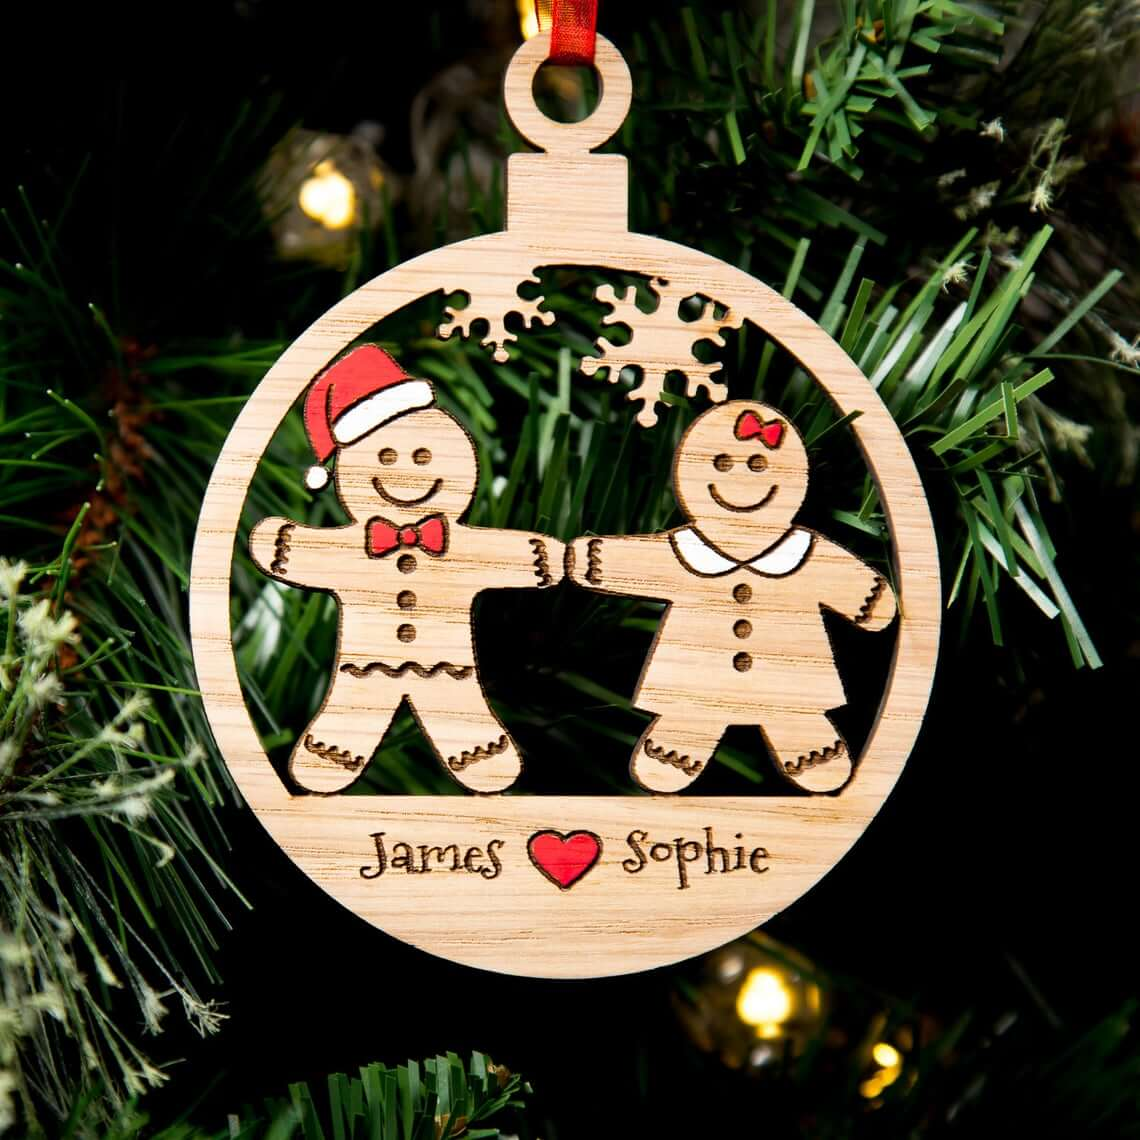 Wooden Gingerbread People Cut Personalized Bauble